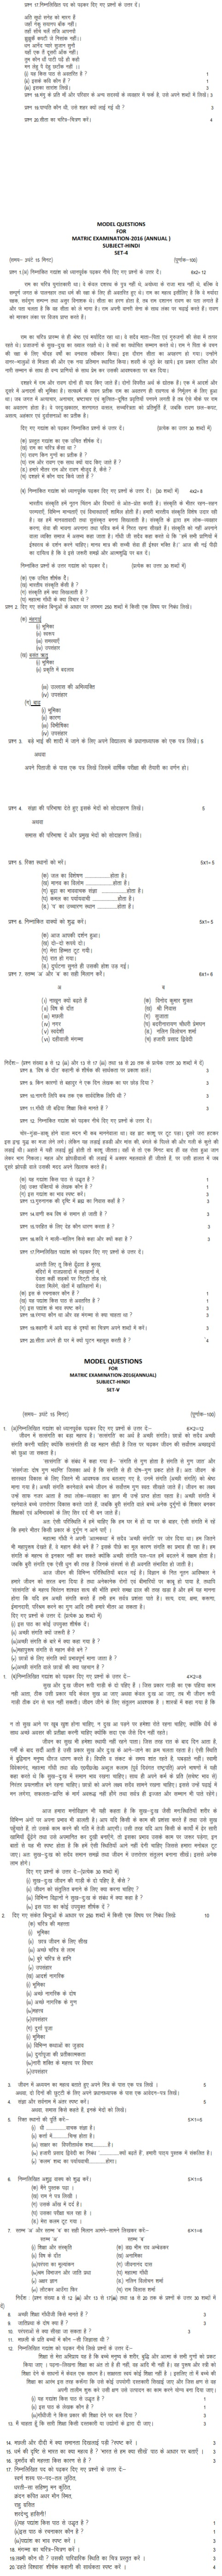 Bihar Board Class X Model Question Papers - Hindi